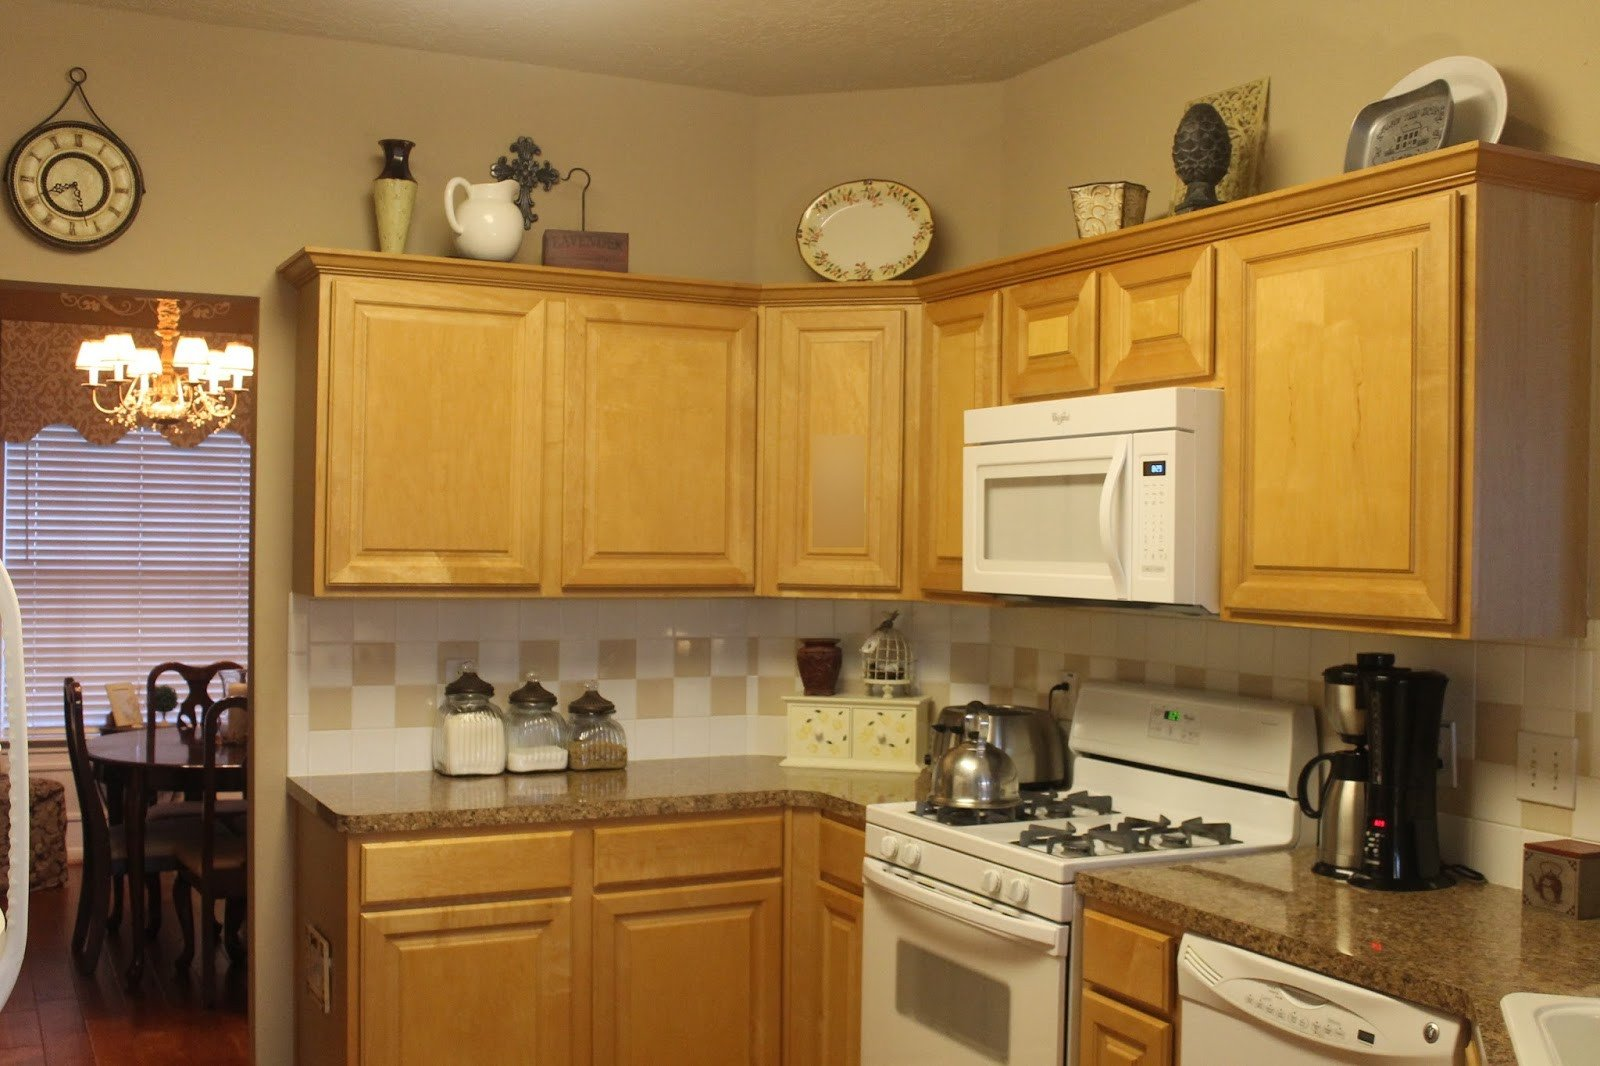 Top Of Kitchen Cabinet Decor Beautiful Texas Decor Rearranging the tops Of My Kitchen Cabinets